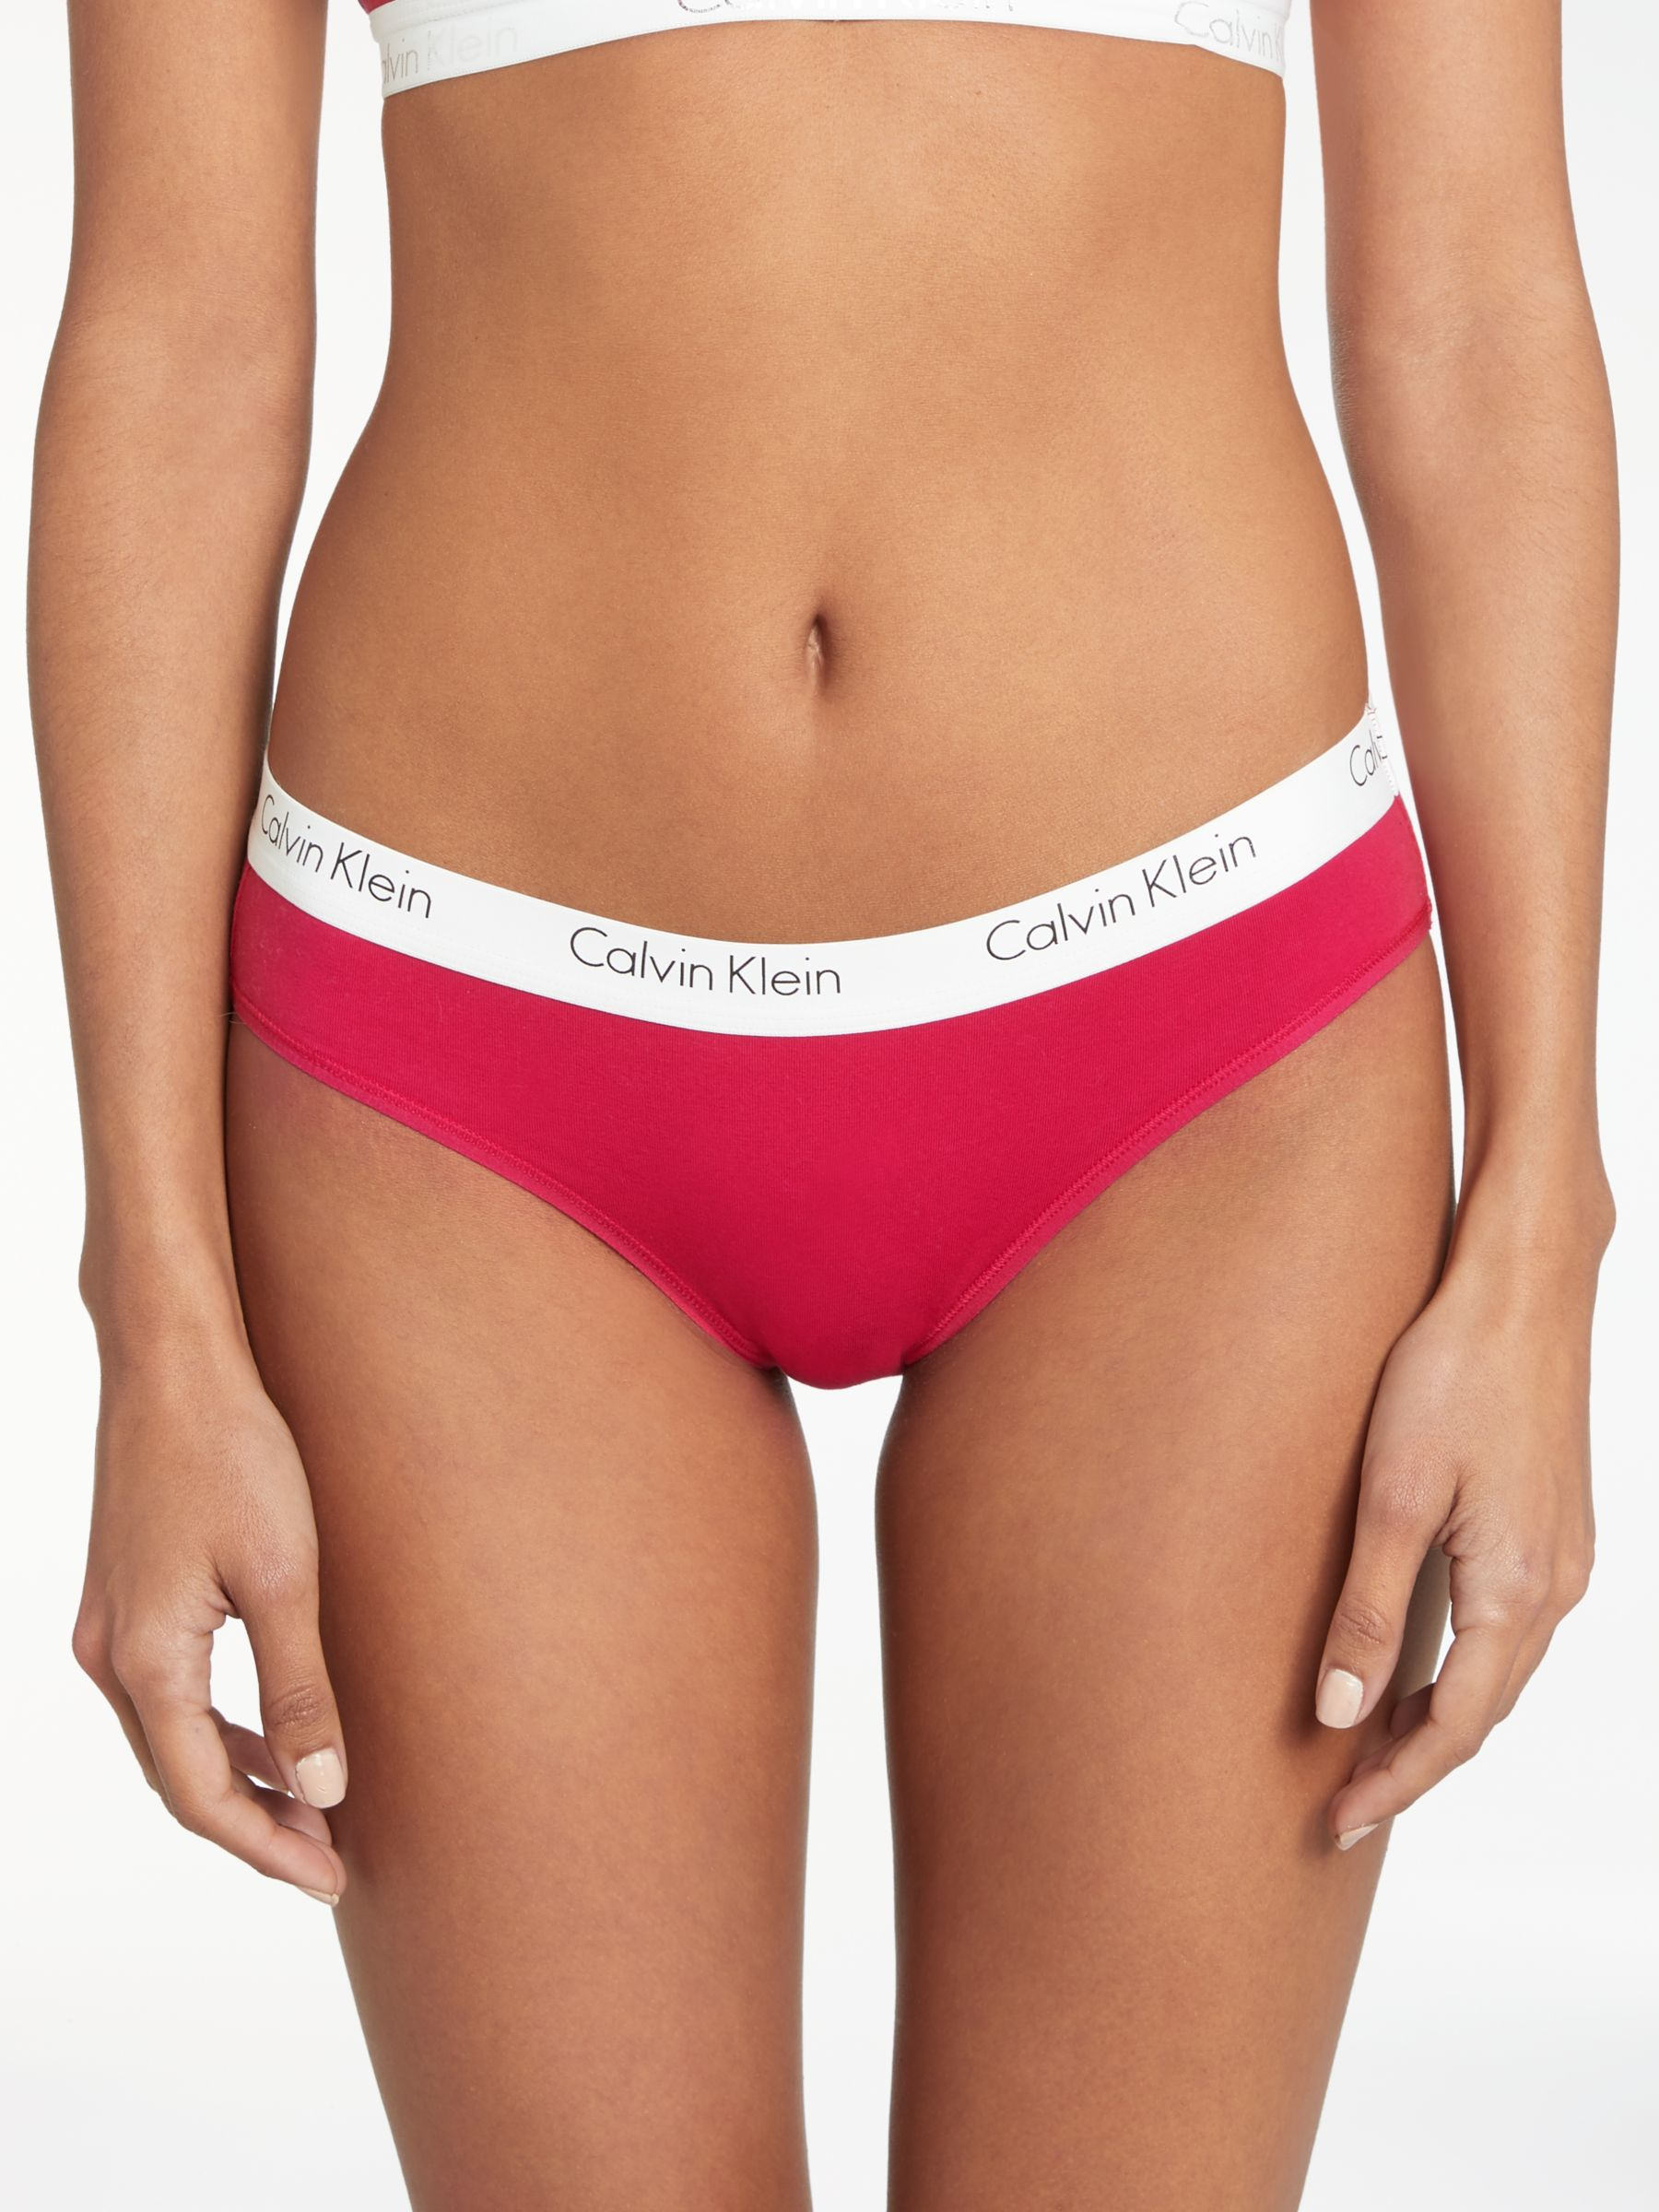 Calvin Klein Underwear CK One Cotton Bikini Briefs, Empower